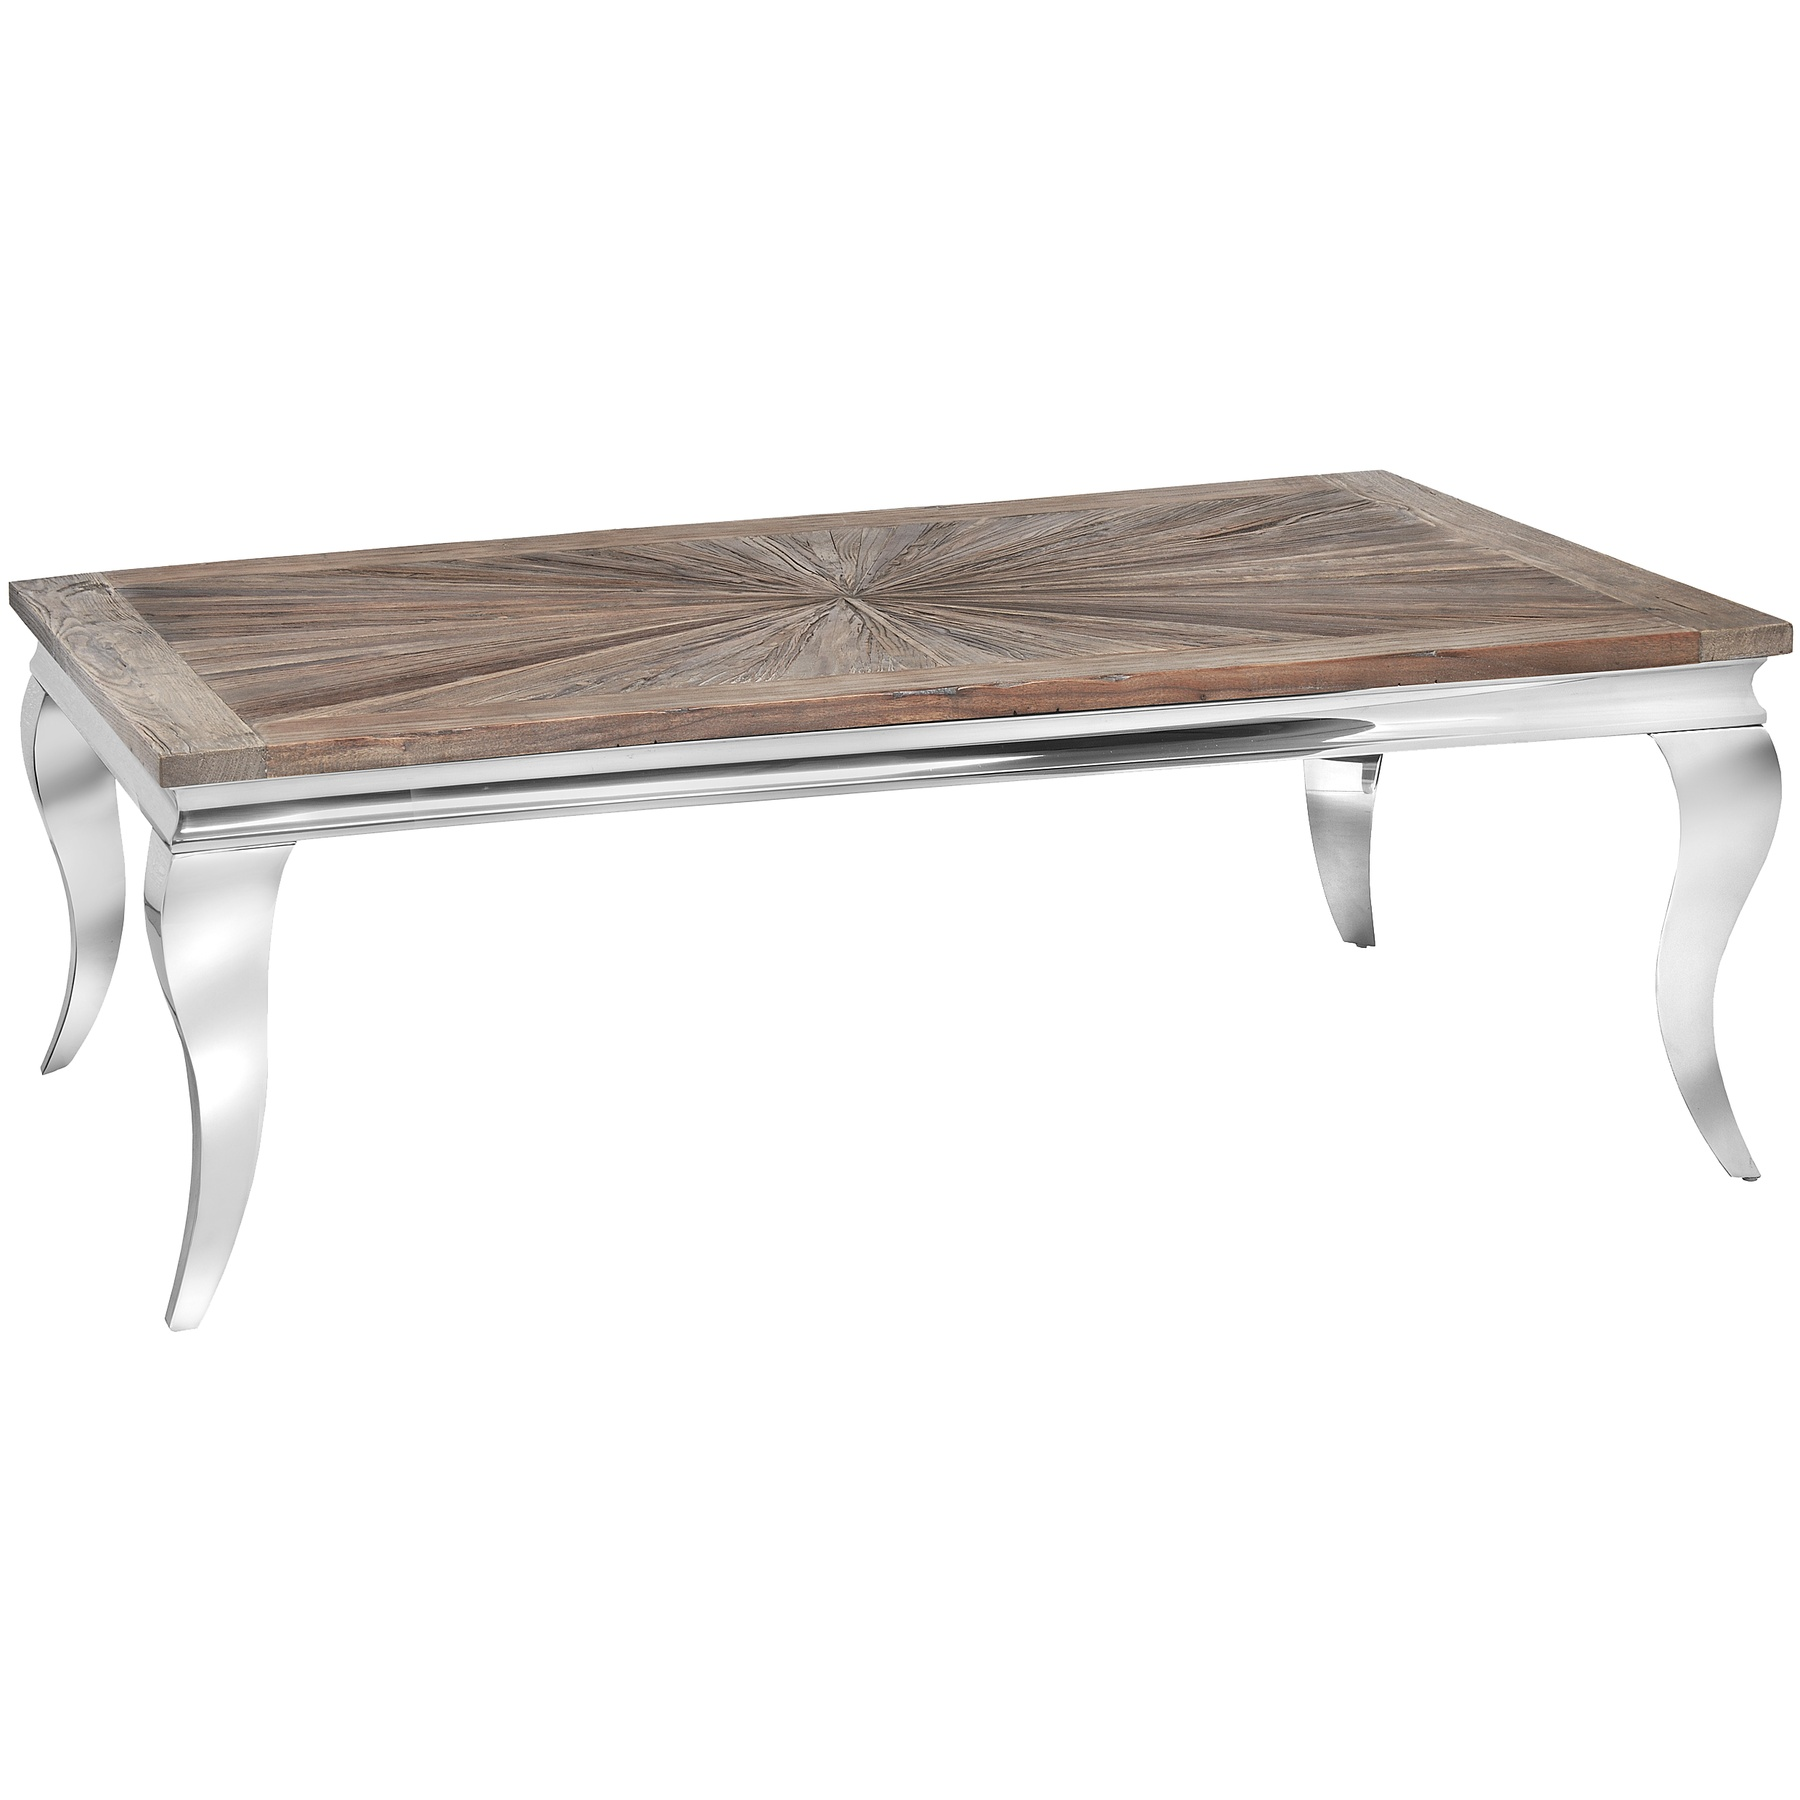 Mayfair Collection Reclaimed Elm Coffee Table From Hill Interiors